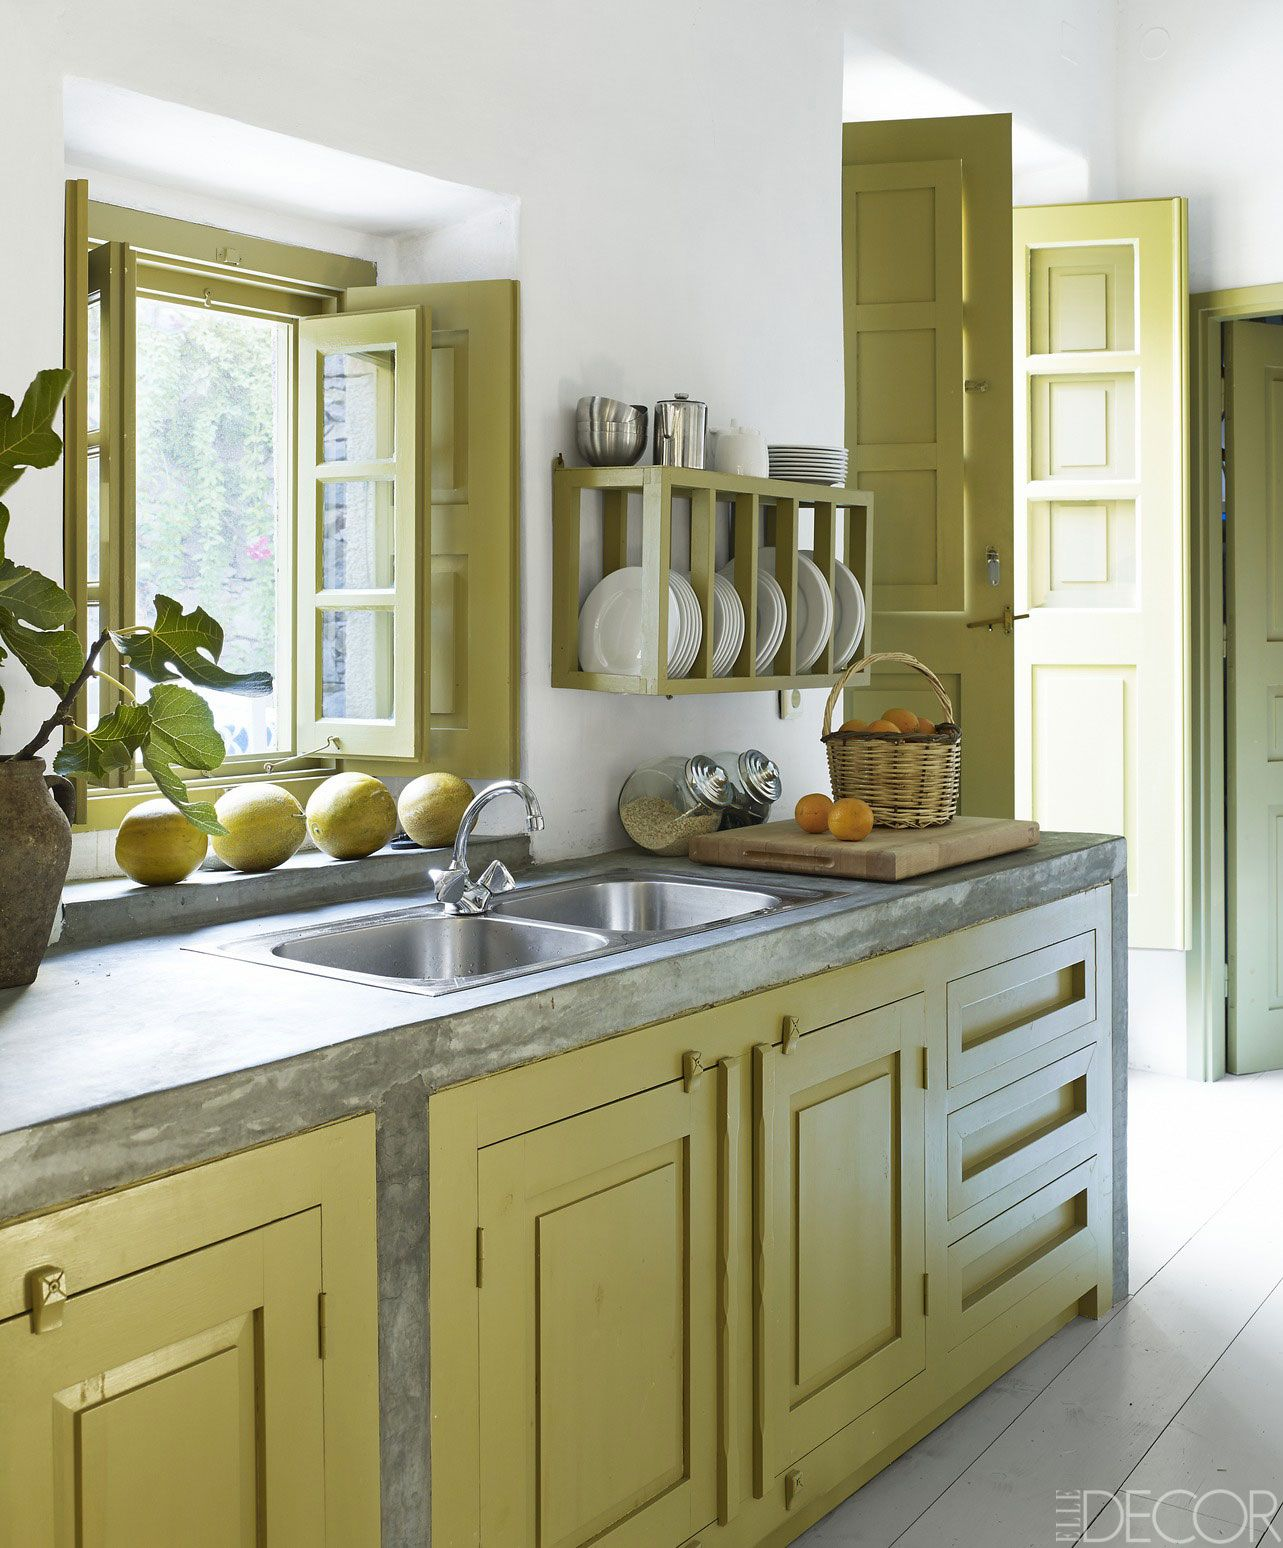 Kitchen Design Ides 50 Small Kitchen Design Ideas  Decorating Tiny Kitchens